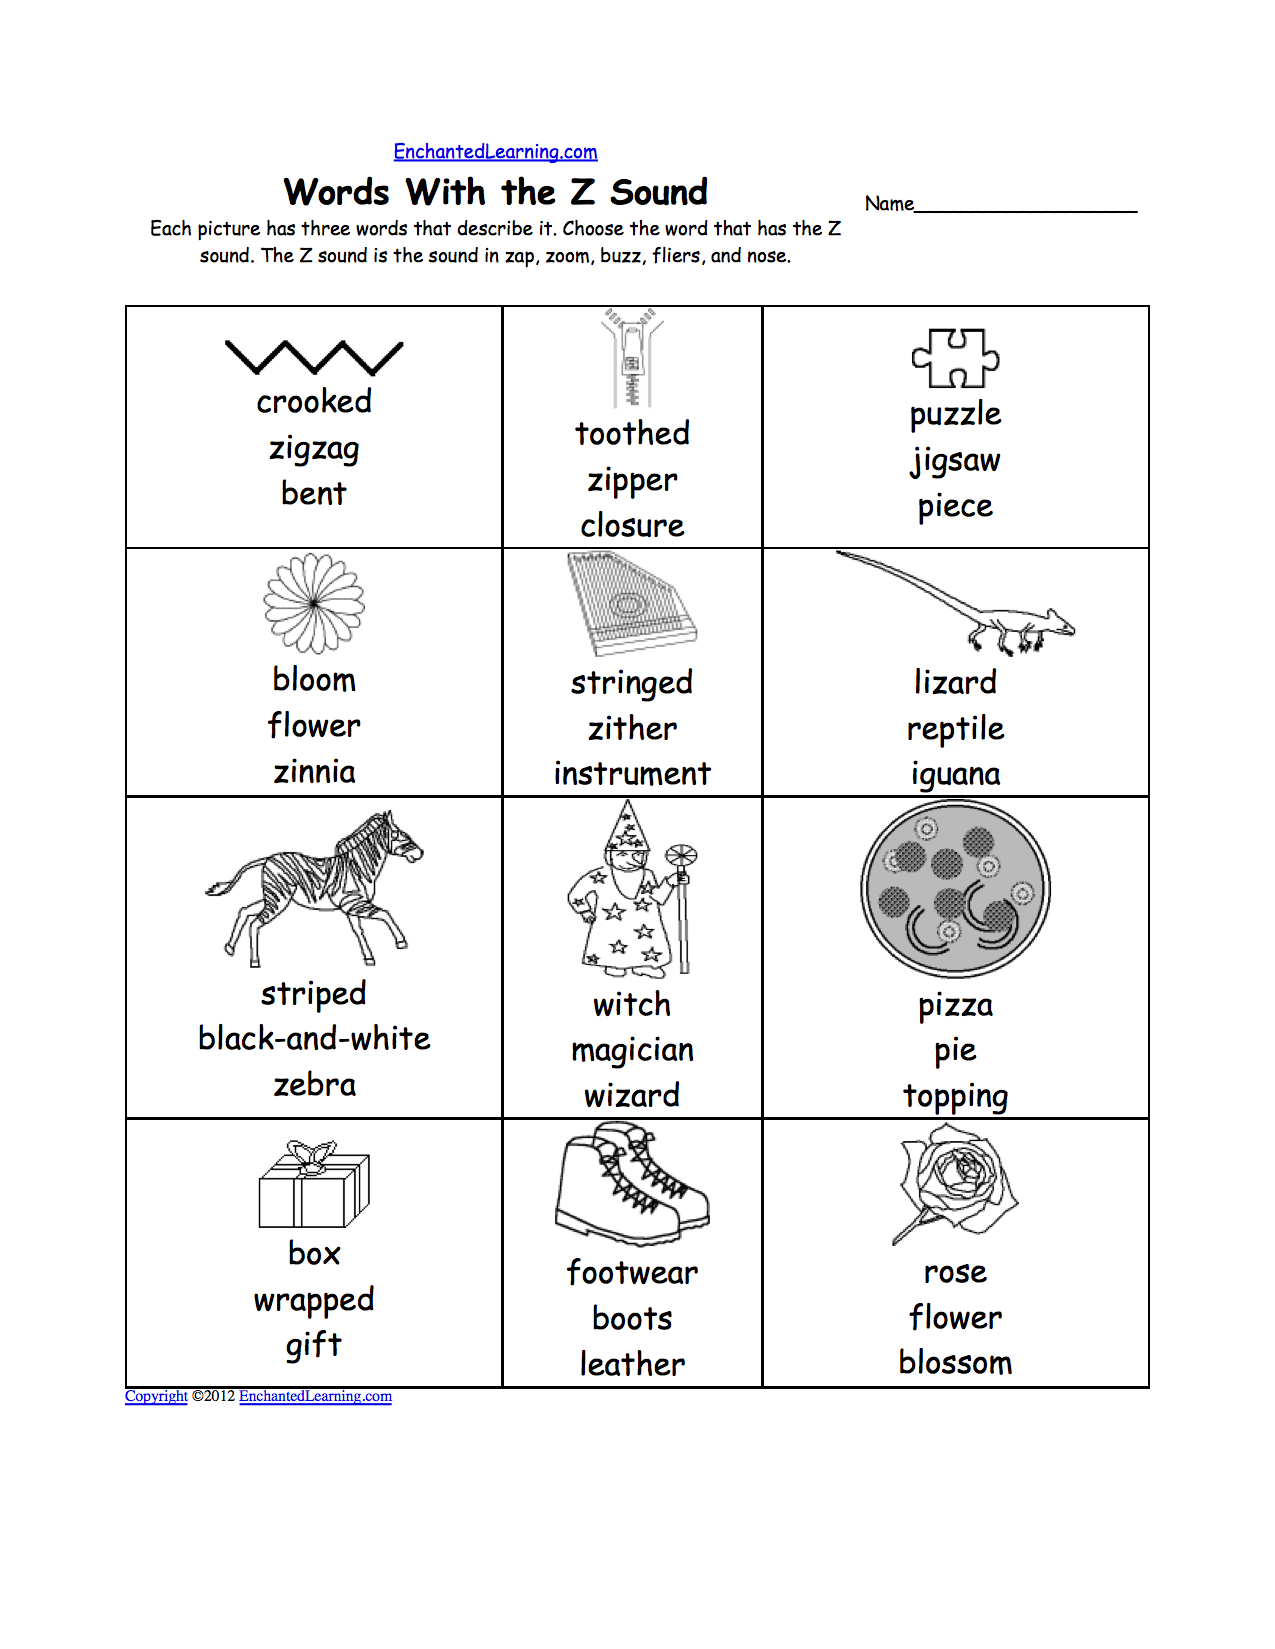 Aldiablosus  Prepossessing Phonics Worksheets Multiple Choice Worksheets To Print  With Excellent Phonics Worksheets Multiple Choice Worksheets To Print  Enchantedlearningcom With Lovely Slavery Worksheet Also Kindergarten Cut And Paste Worksheets Free In Addition Free Math Minute Worksheets And Act Grammar Worksheets As Well As Number Worksheet Preschool Additionally Independent Events Probability Worksheet From Enchantedlearningcom With Aldiablosus  Excellent Phonics Worksheets Multiple Choice Worksheets To Print  With Lovely Phonics Worksheets Multiple Choice Worksheets To Print  Enchantedlearningcom And Prepossessing Slavery Worksheet Also Kindergarten Cut And Paste Worksheets Free In Addition Free Math Minute Worksheets From Enchantedlearningcom